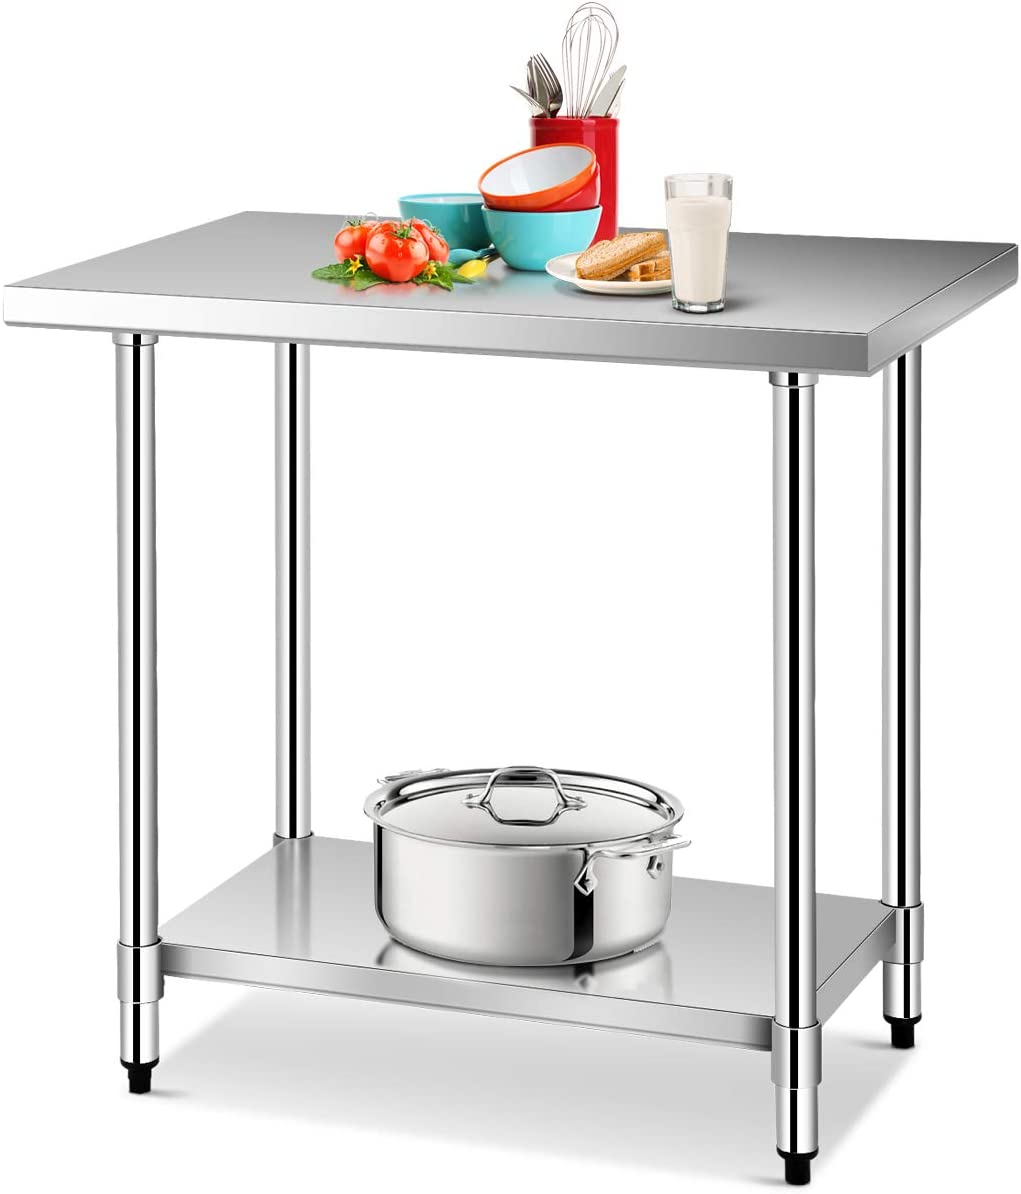 Amazon Com Giantex 36 X 24 Inches Nsf Stainless Steel Work Table Commercial Kitchen Prep Work Table With Galvanized Shelf Adjustable Plastic Feet Heavy Duty Work Prep Table For Kitchen Restaurant Kitchen